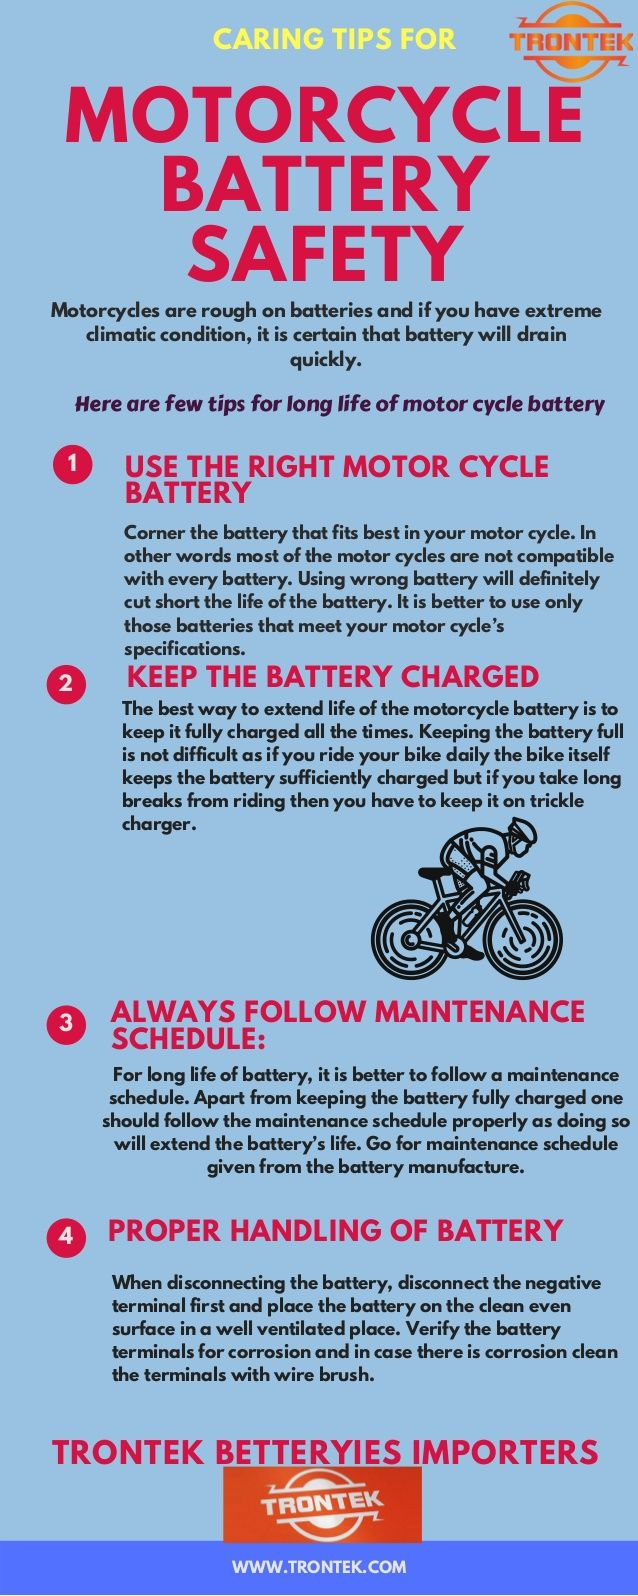 However if proper care and caution is taken the life of motorcycle batteries can be extended for several years.